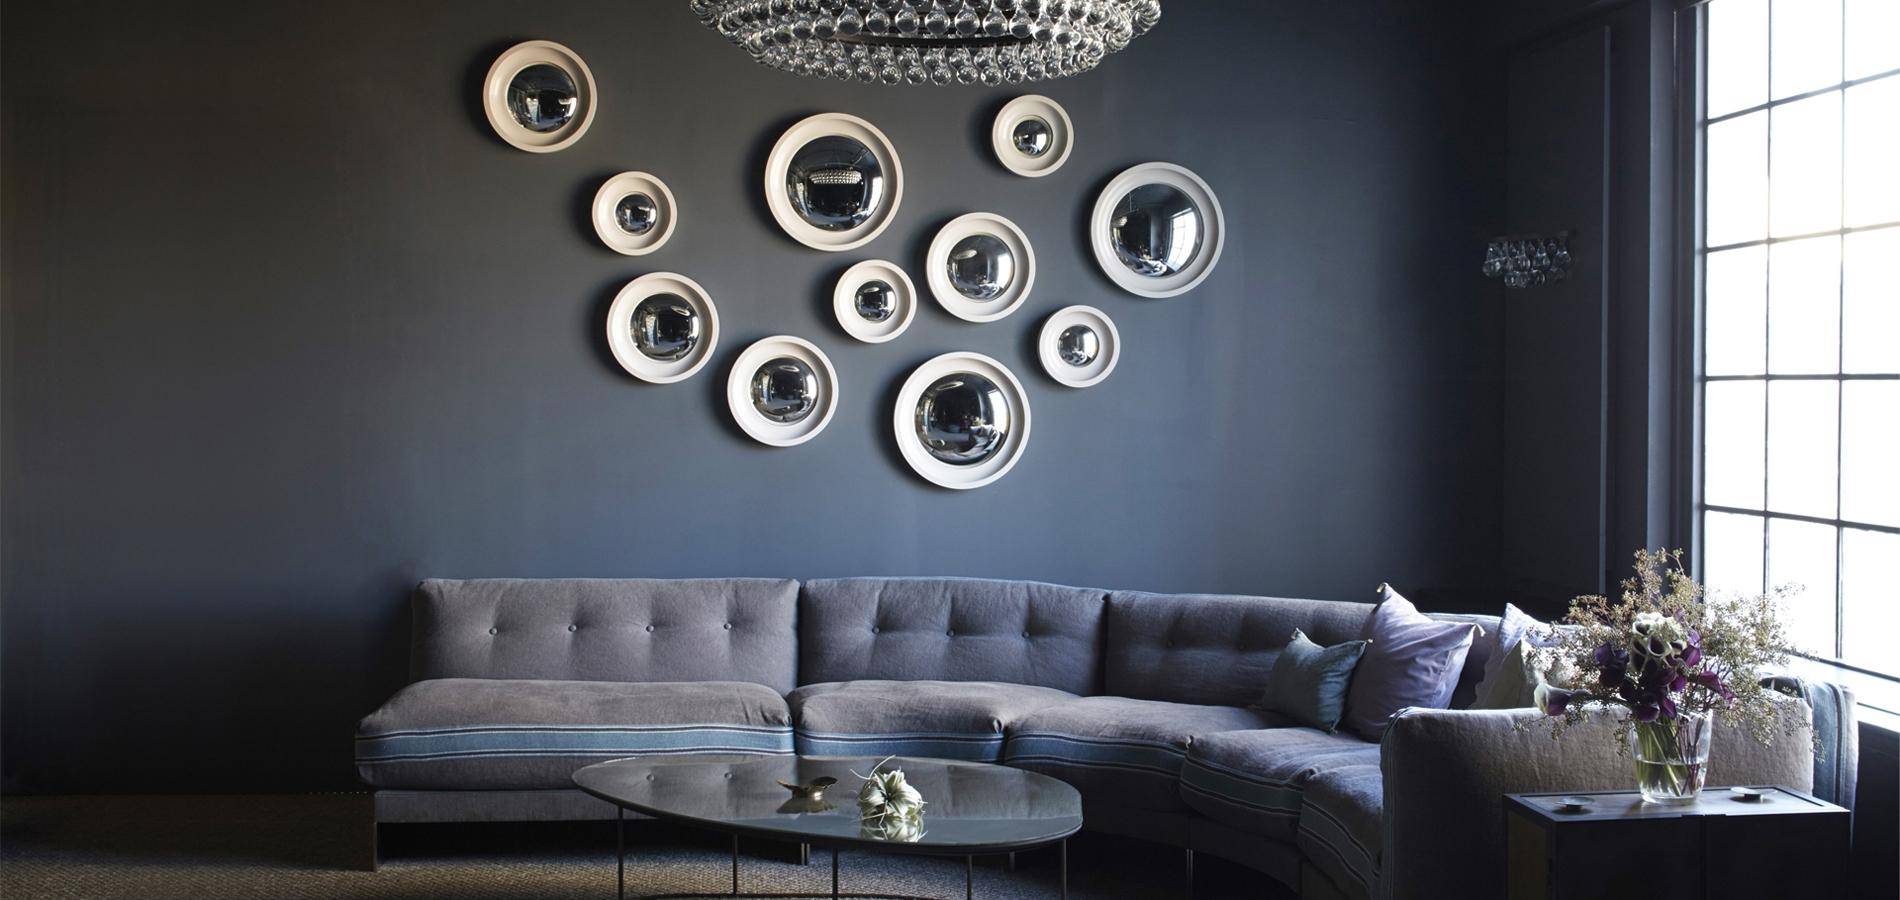 Comment bien utiliser le miroir en d co madame figaro for Decoration de miroir